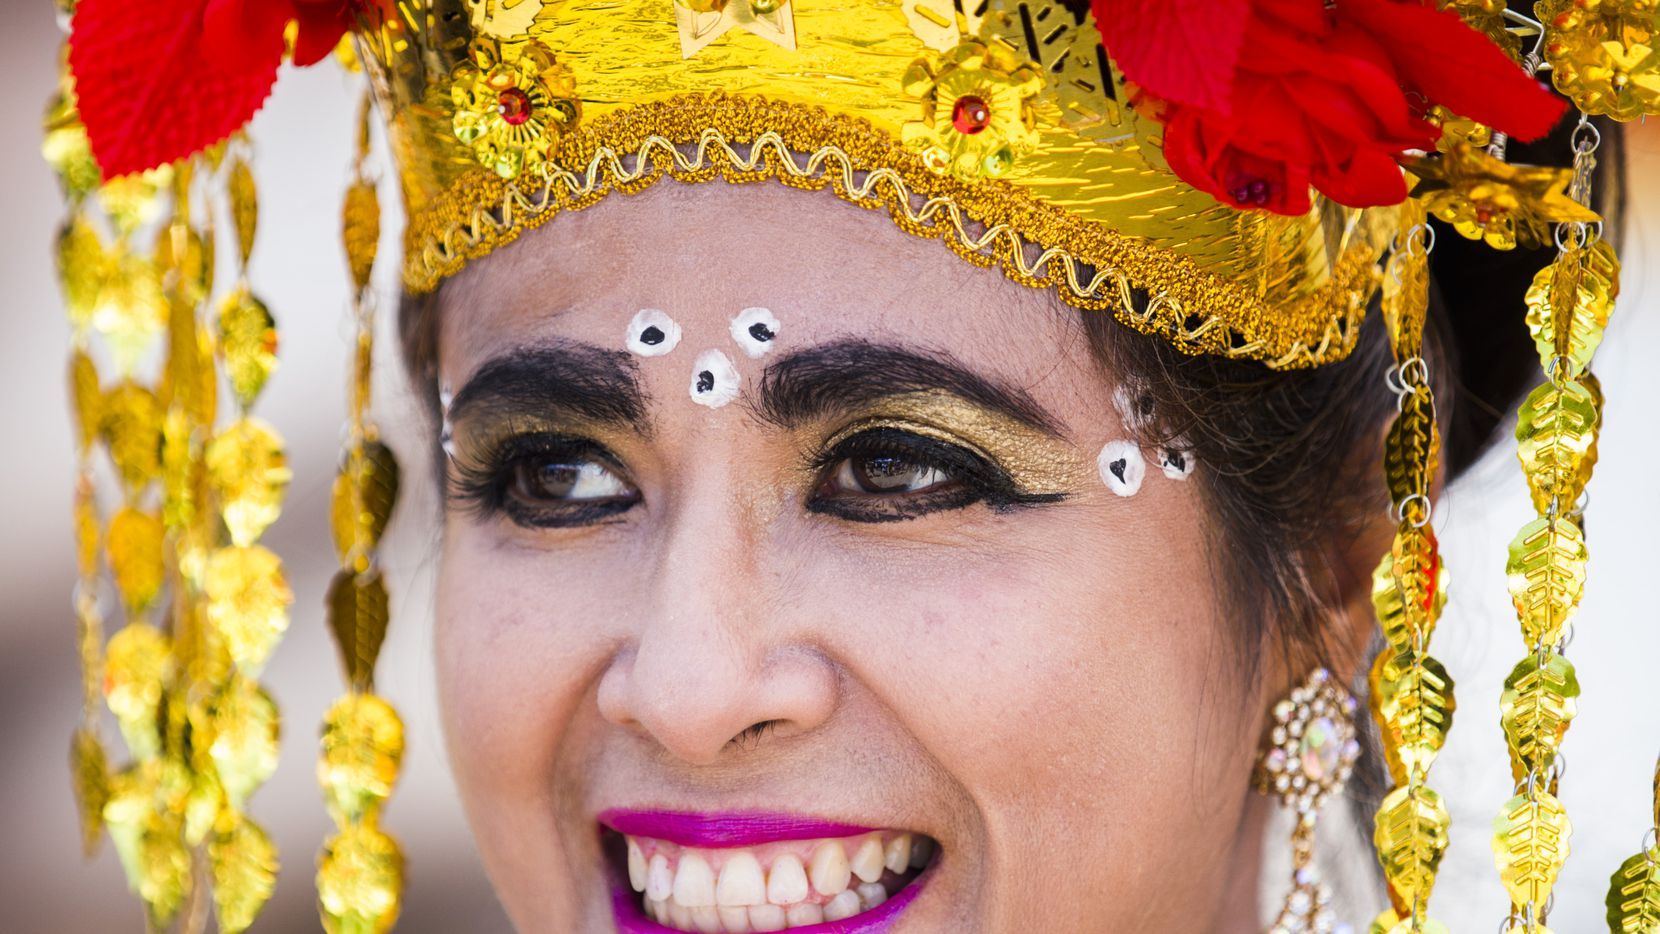 Lina Barrryhill wears traditional Indonesian clothing during the 27th Home Depot Asian Festival on Saturday, May 13, 2017 at Cotton Bowl Plaza in Dallas Fair Park.